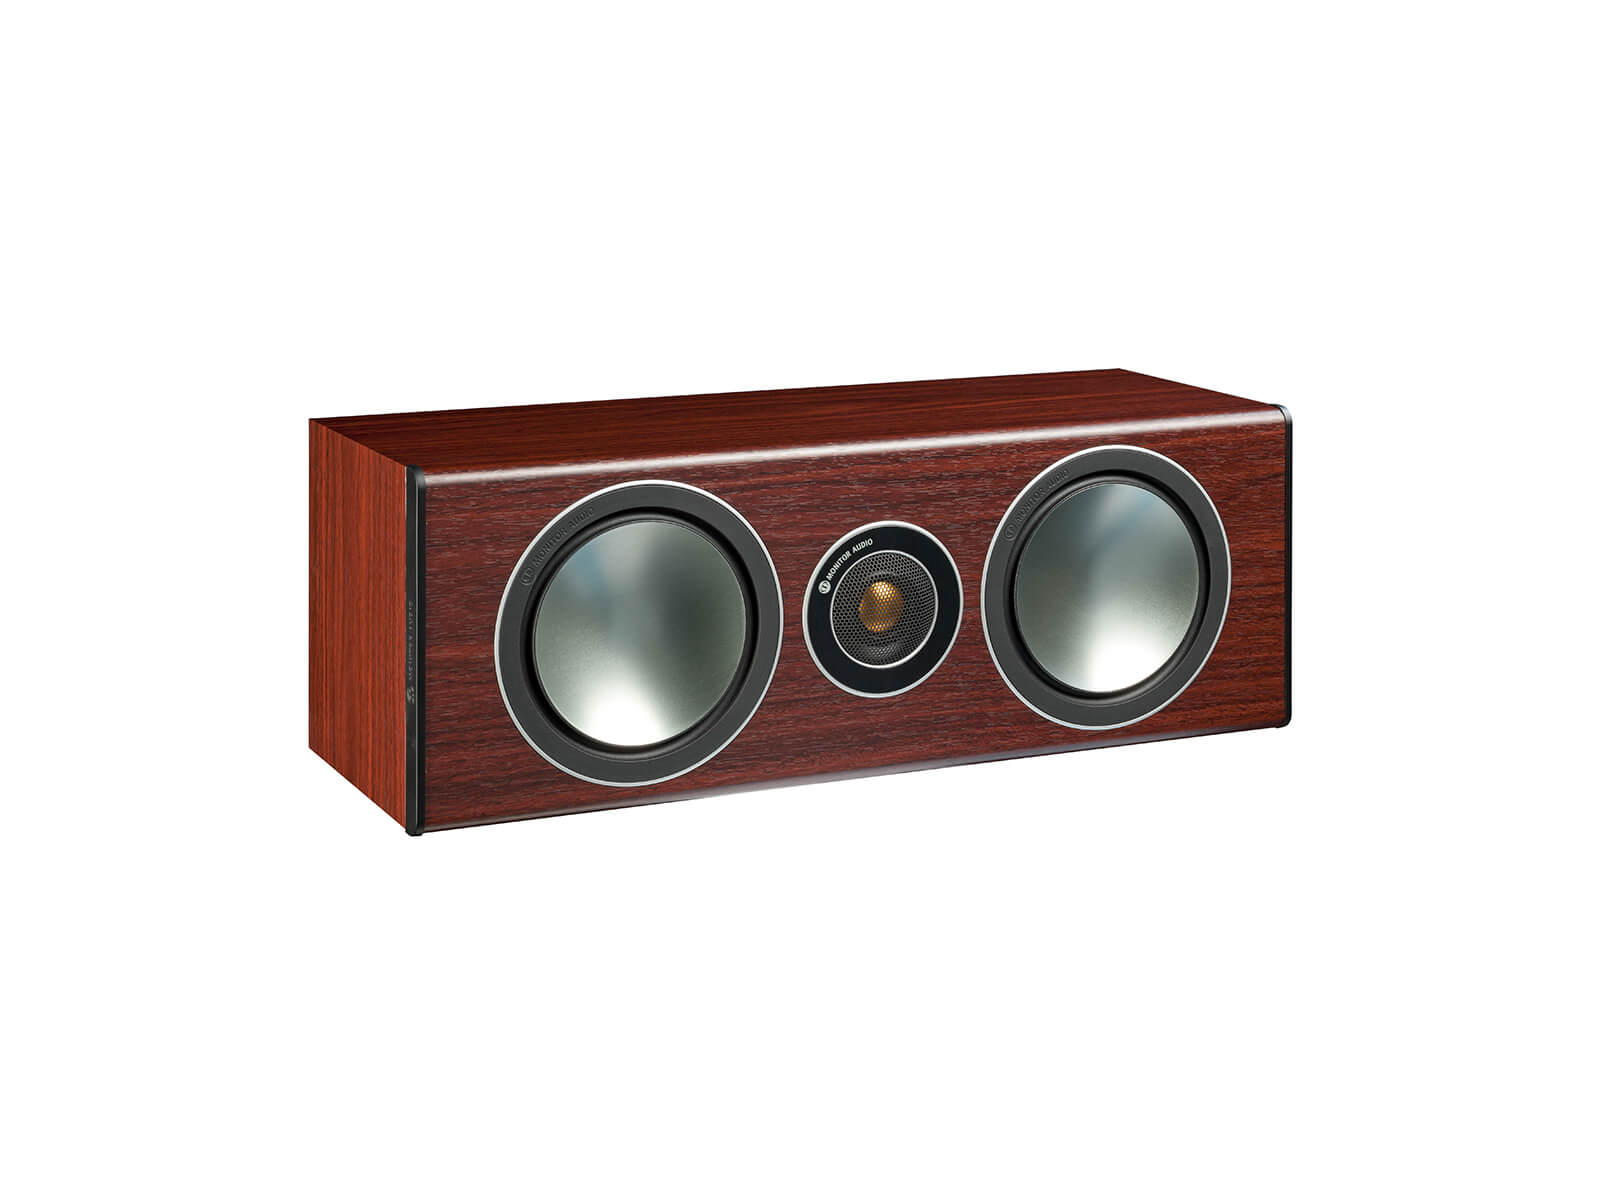 Bronze Centre, grille-less centre channel speakers, with a rosemah vinyl finish.